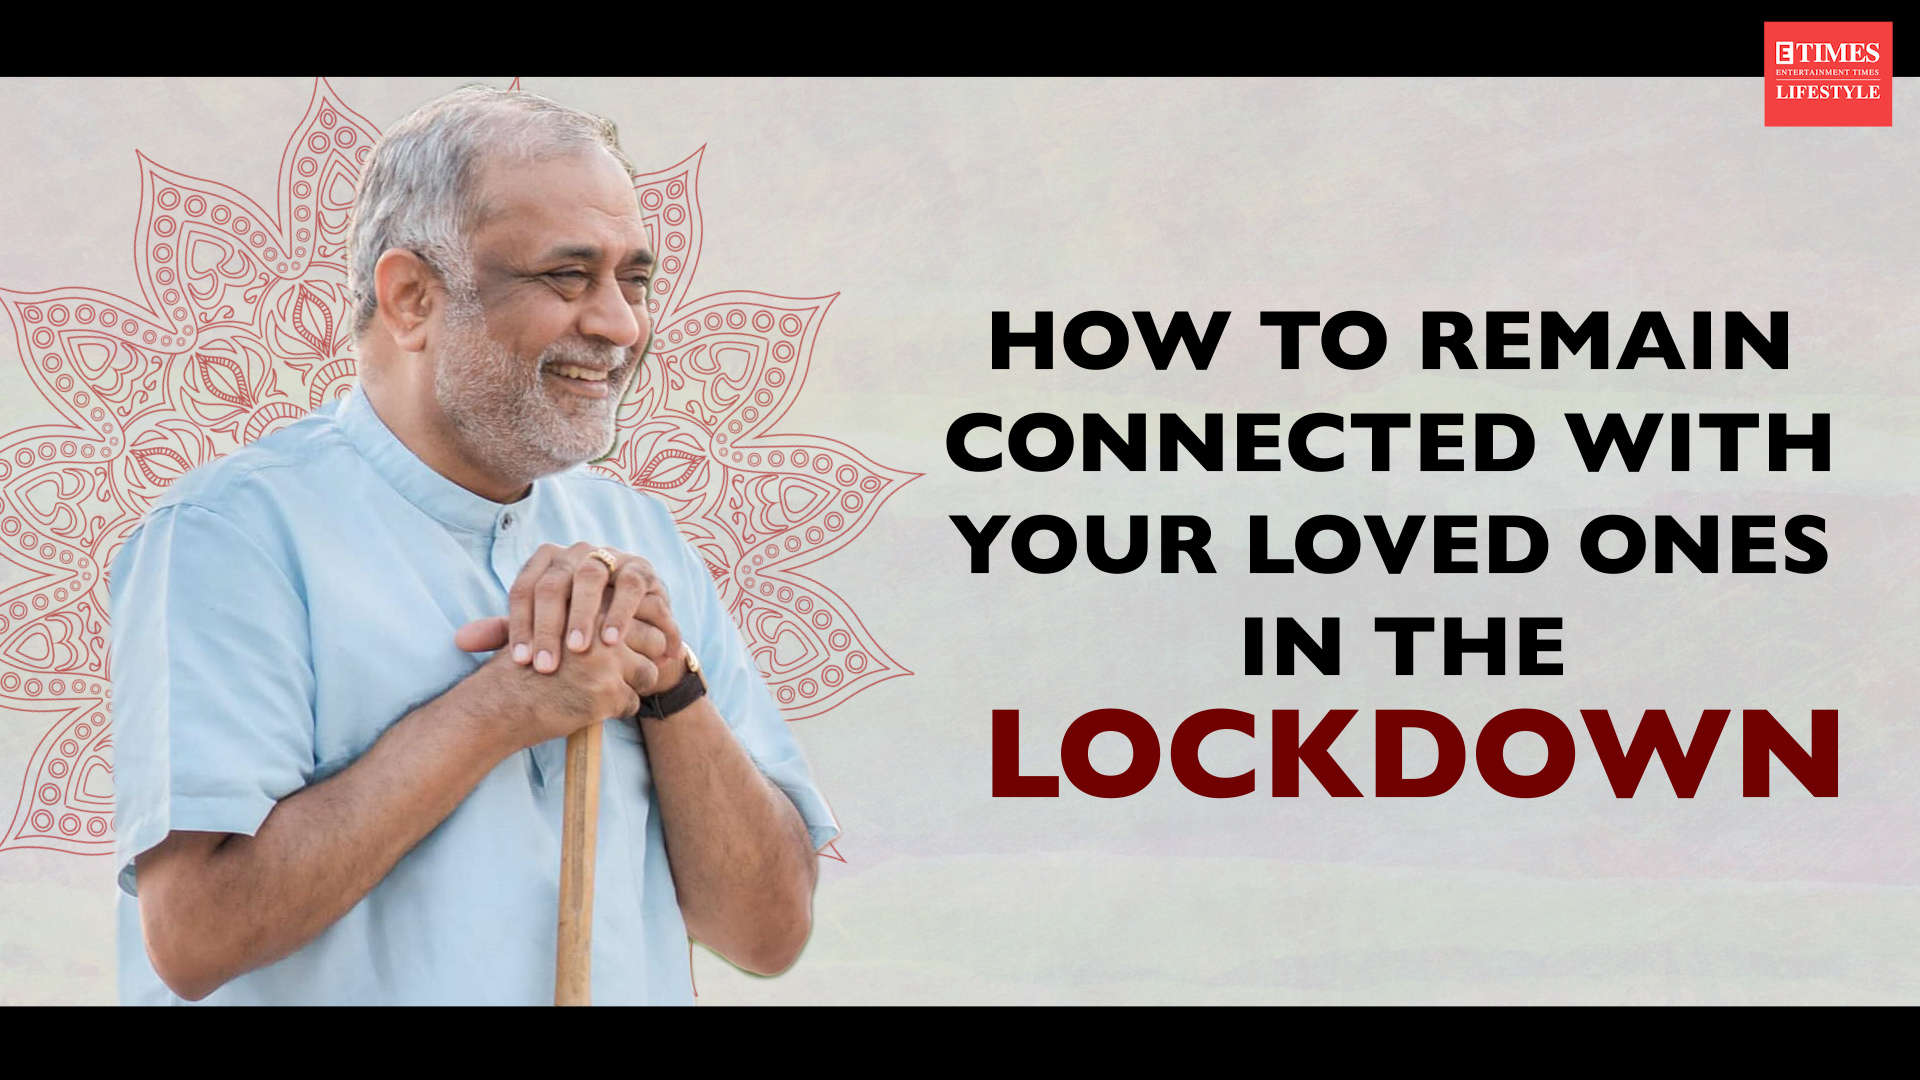 how-to-remain-connected-with-your-loved-ones-in-the-lockdown